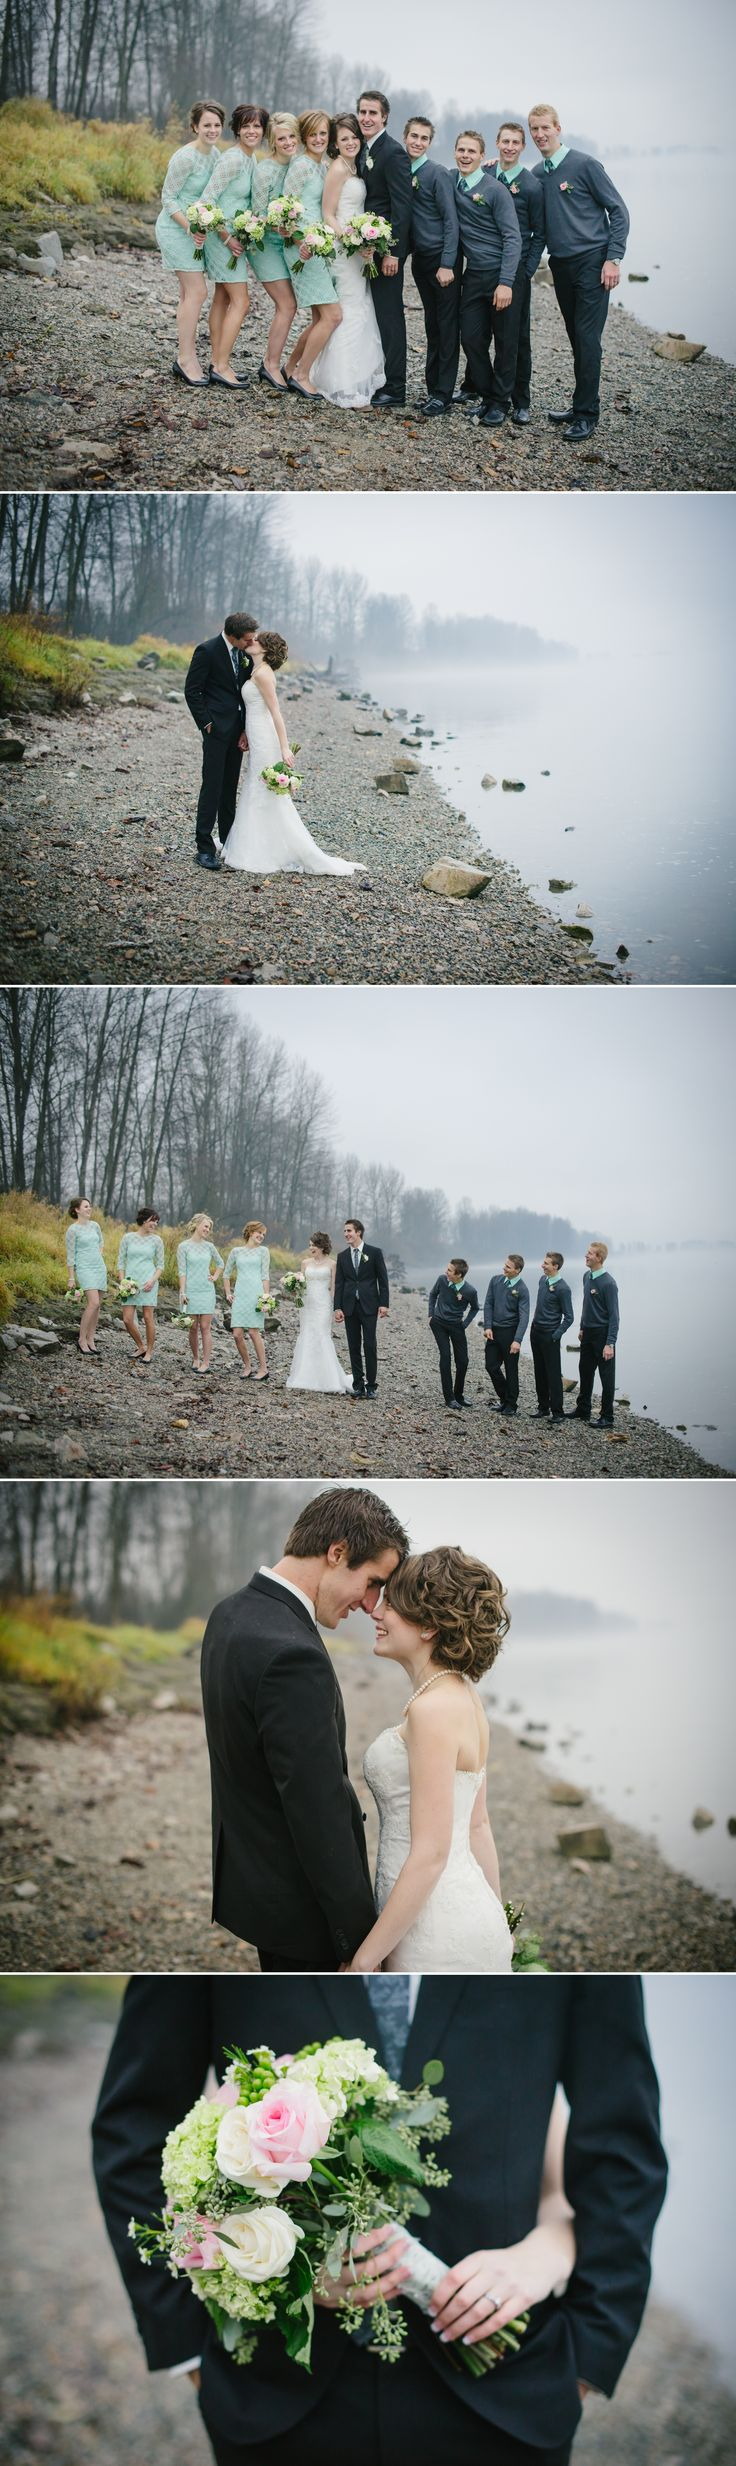 Winter Wedding, Fraser River, Teal Bridesmaid Dresses, Grey Groomsmen, Teal and Grey Wedding, Wedding Portraits, Wedding Party, Tanis Katie Photography